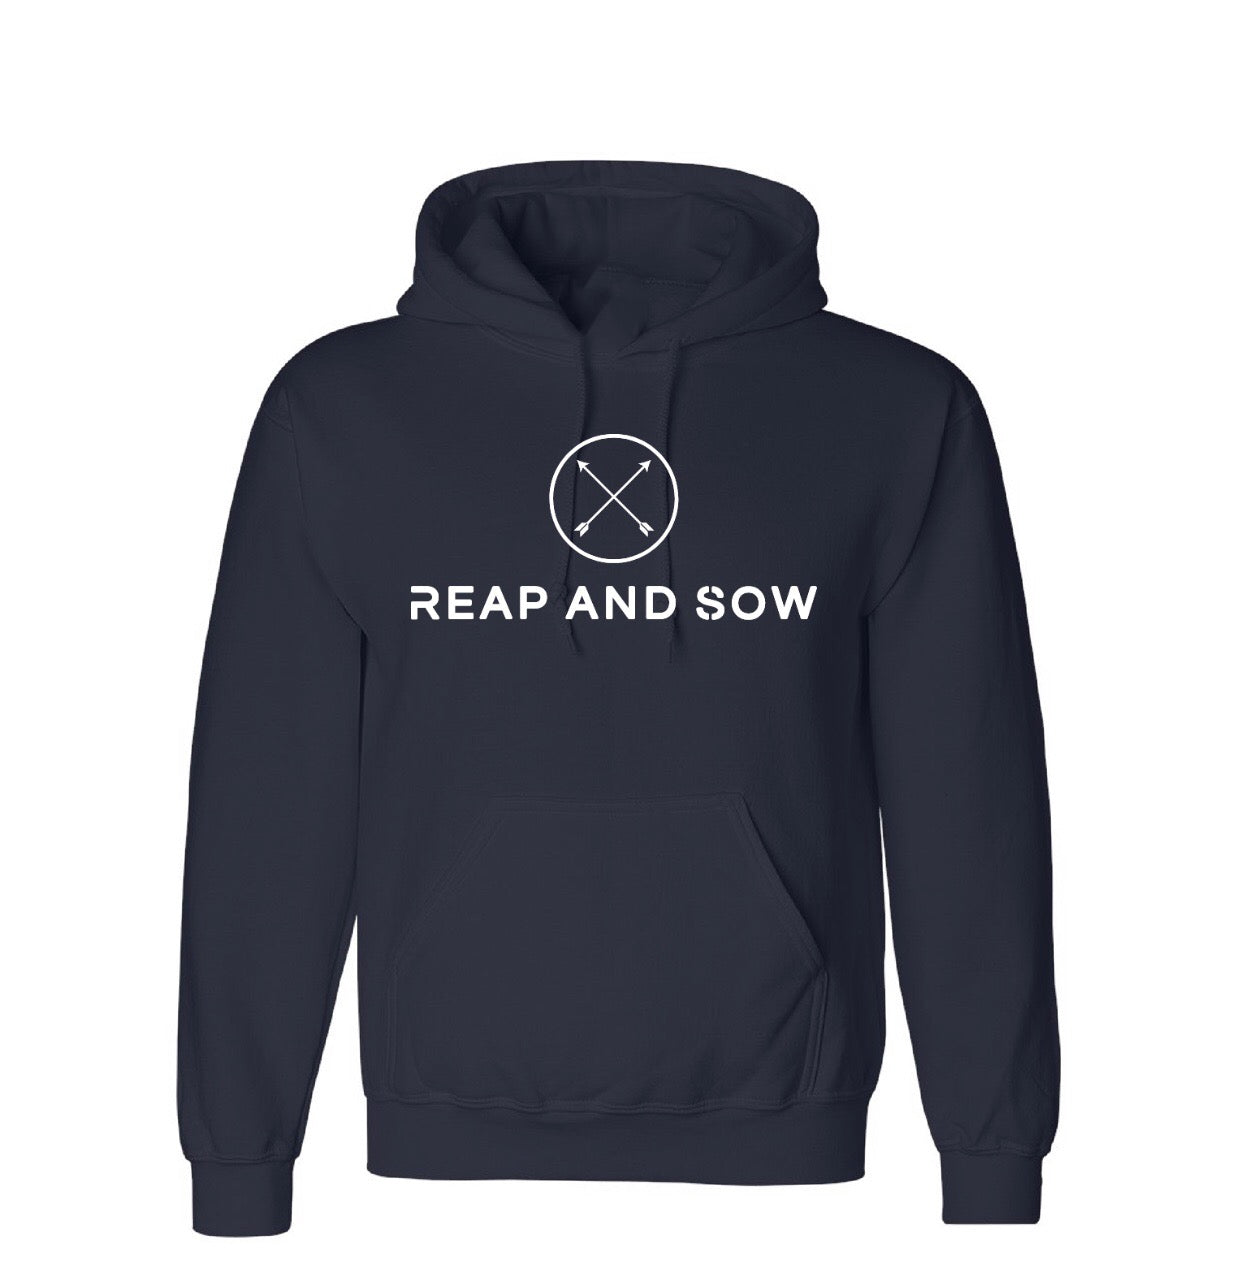 Original Reap and Sow Hooded Sweatshirt